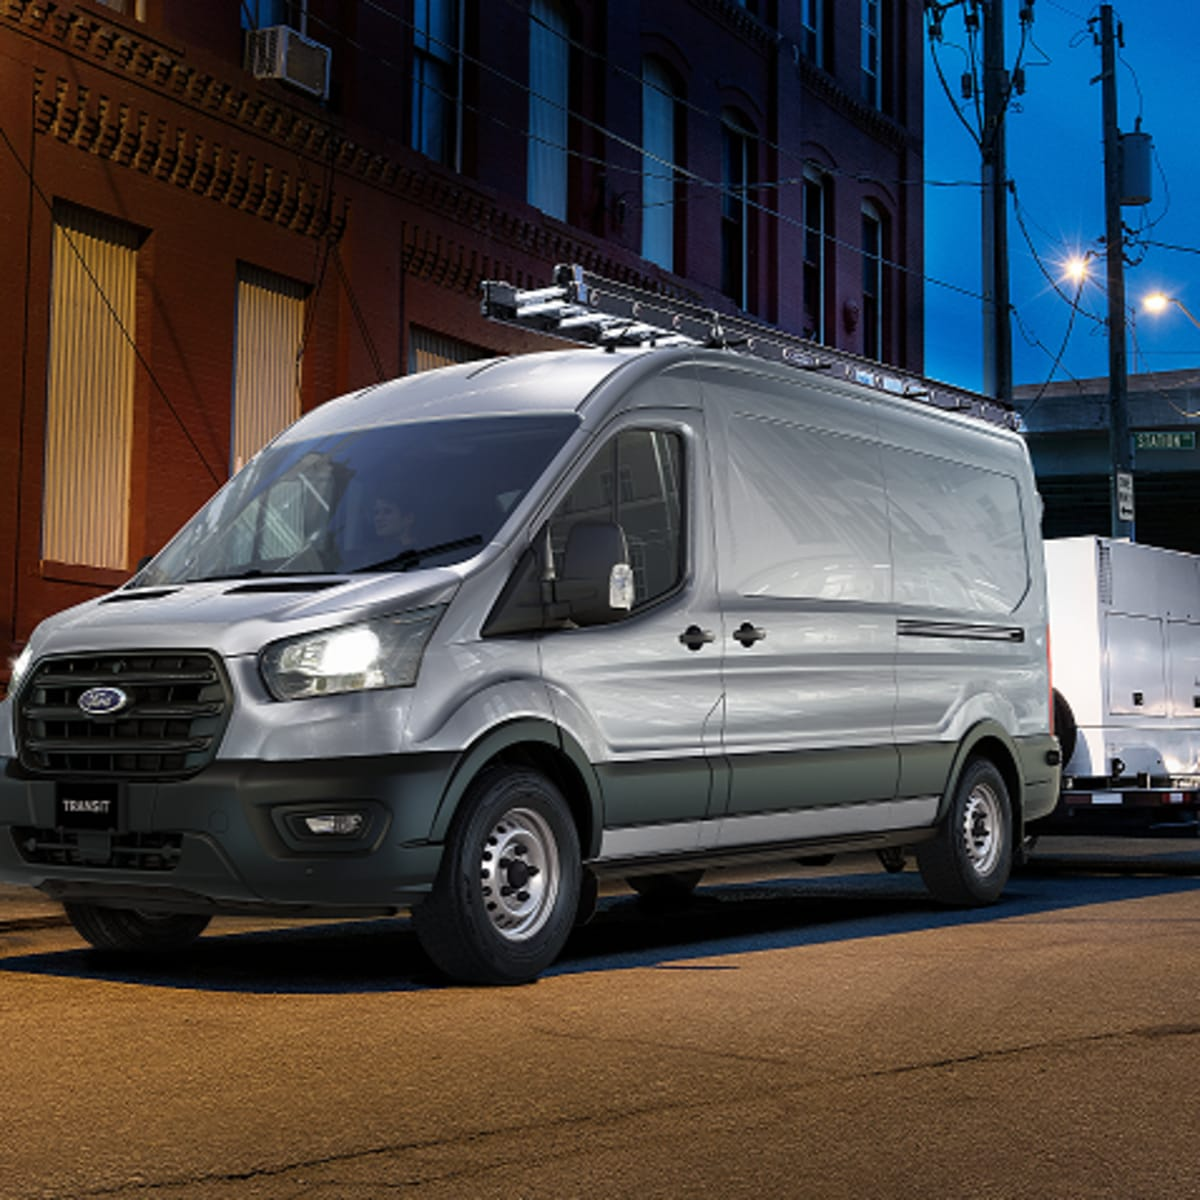 2020 ford transit pricing and specs caradvice 2020 ford transit pricing and specs